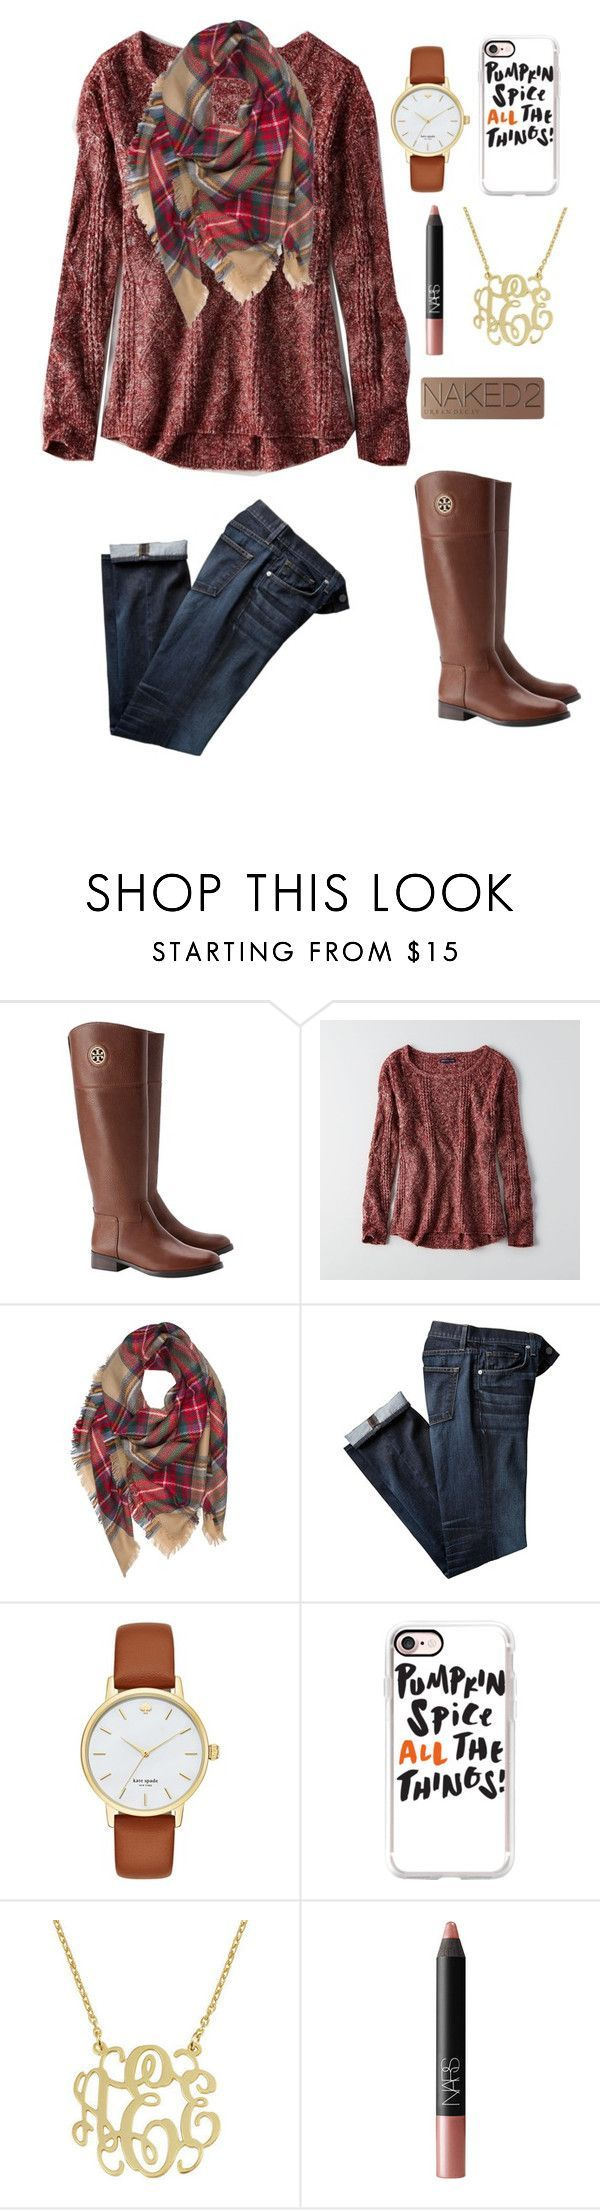 """""""Thanksgiving (Day 1)"""" by mae343 ❤ liked on Polyvore featuring Tory Burch, American Eagle Outfitters, Kate Spade, Casetify, NARS Cosmetics, Urban Decay and 30DaysOfChristmas2k16"""